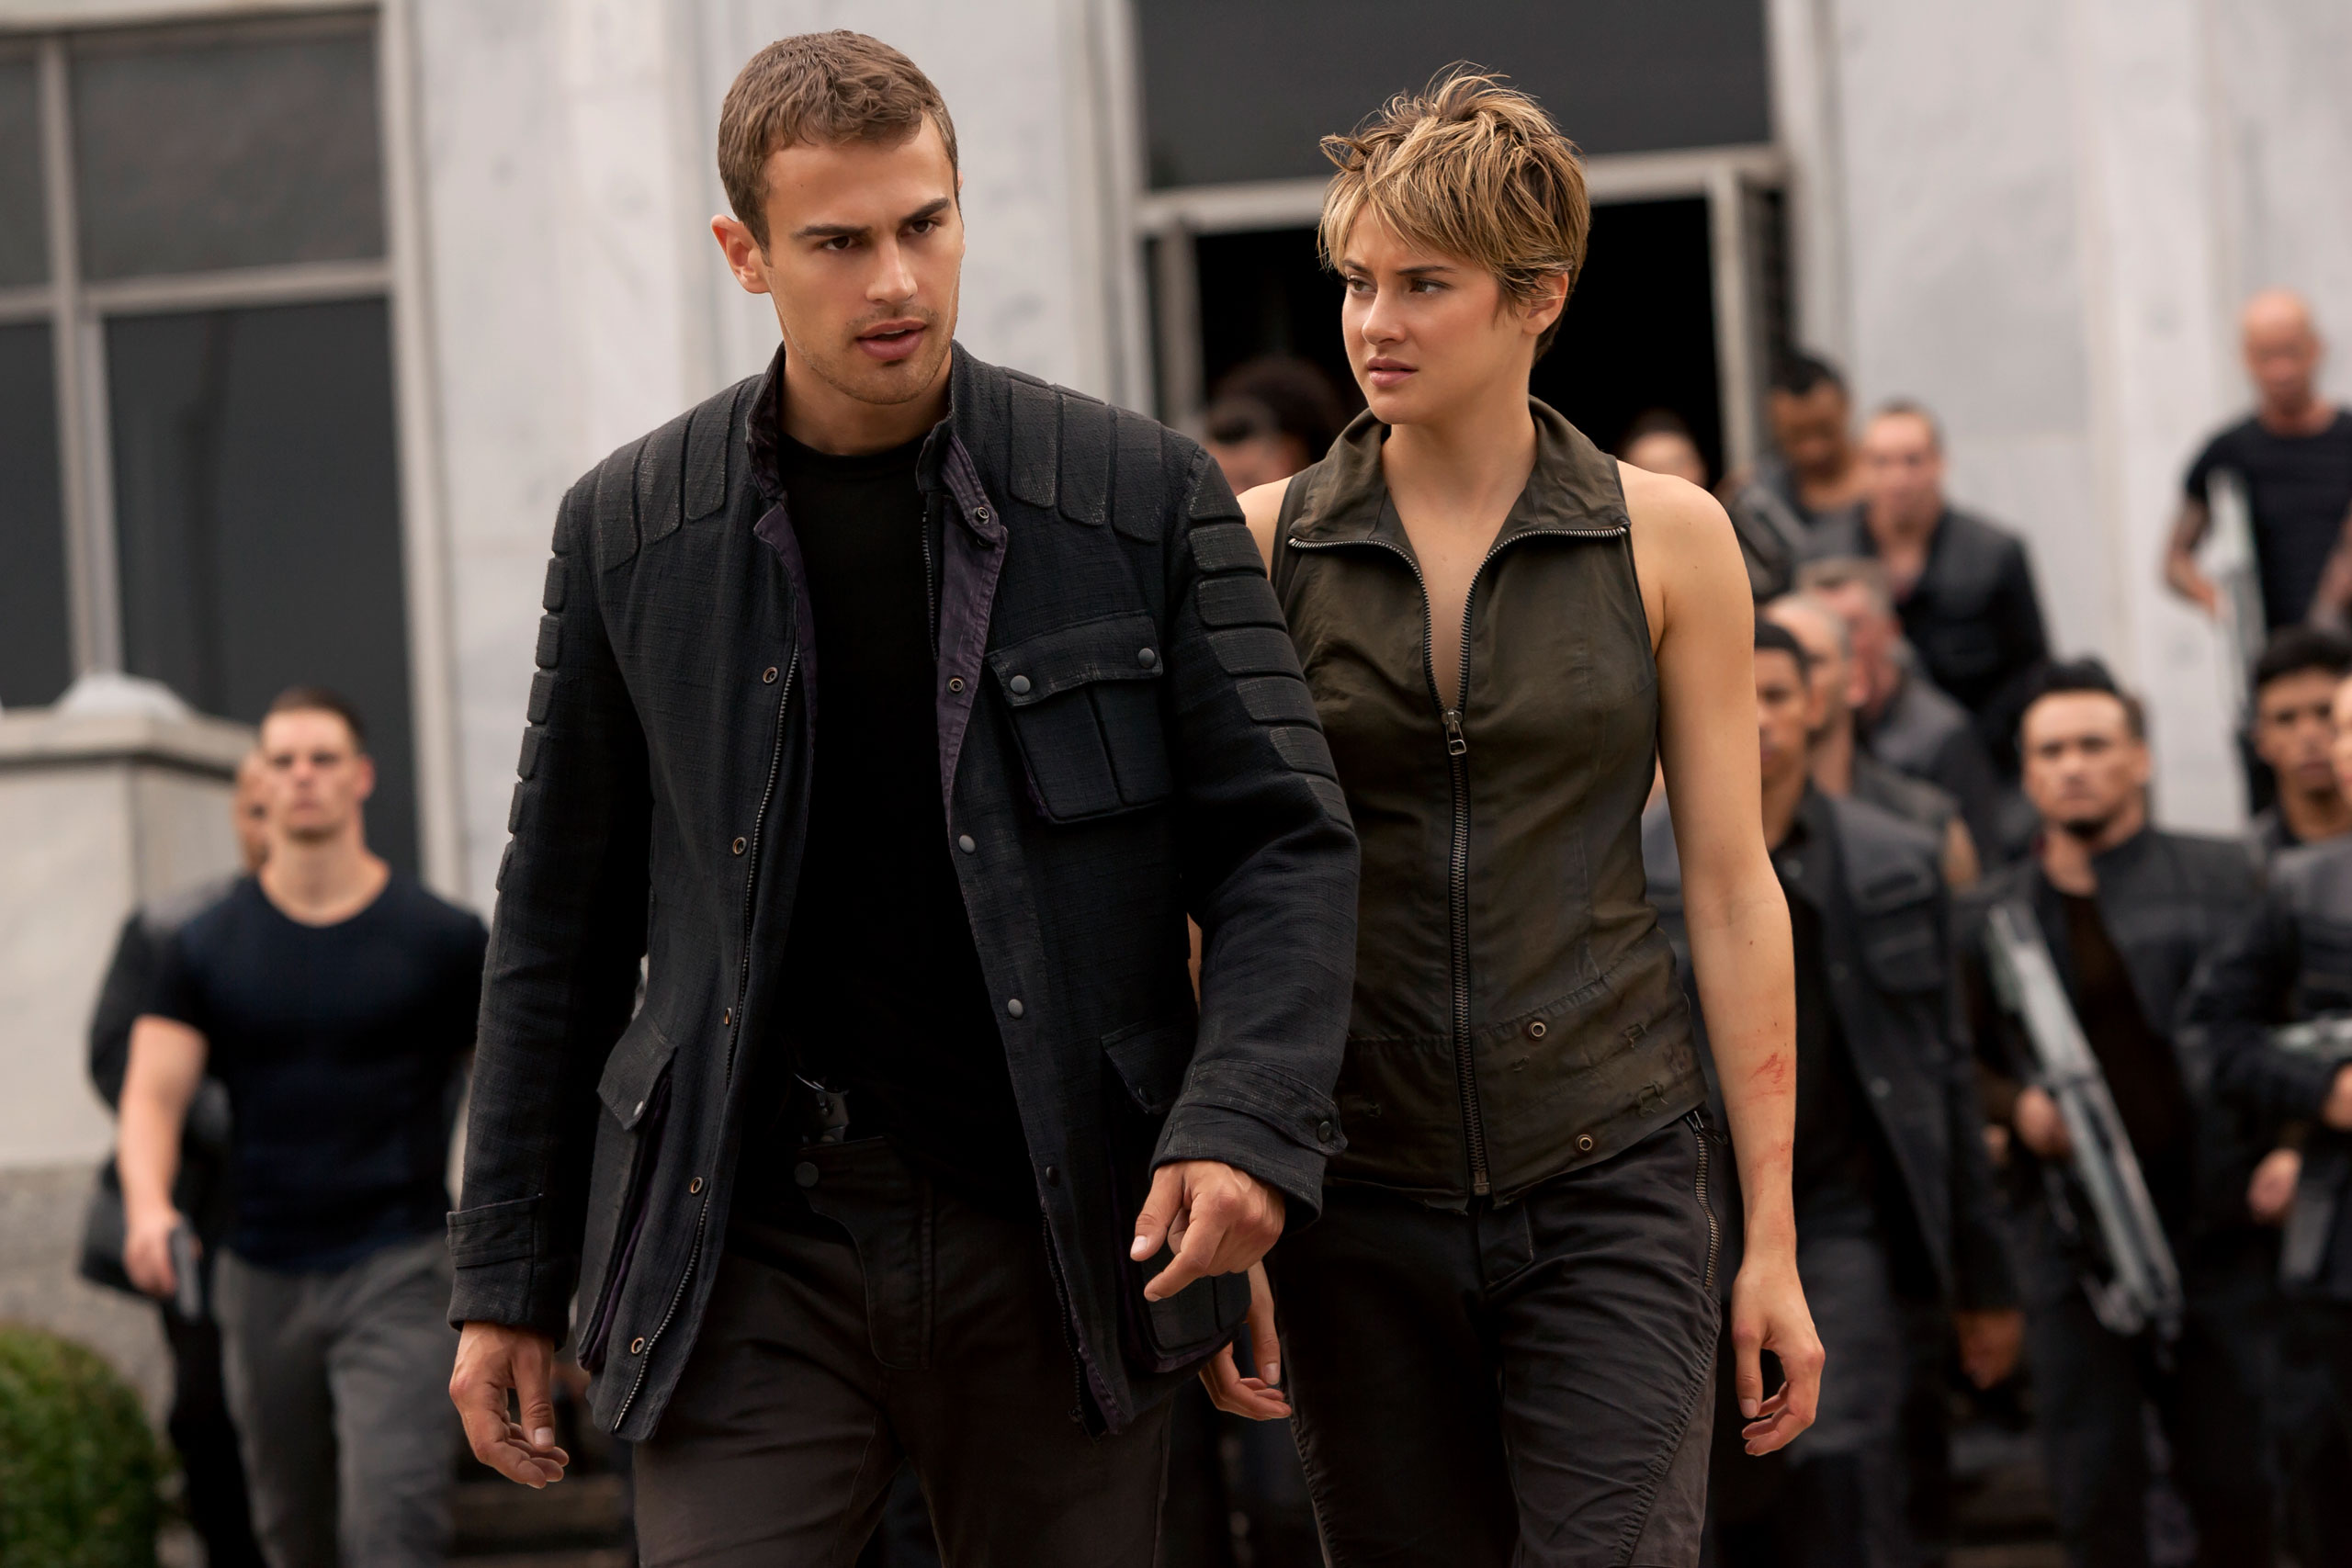 Four (Theo James) and Tris (Shailene Woodley) in The Divergent Series: Insurgent